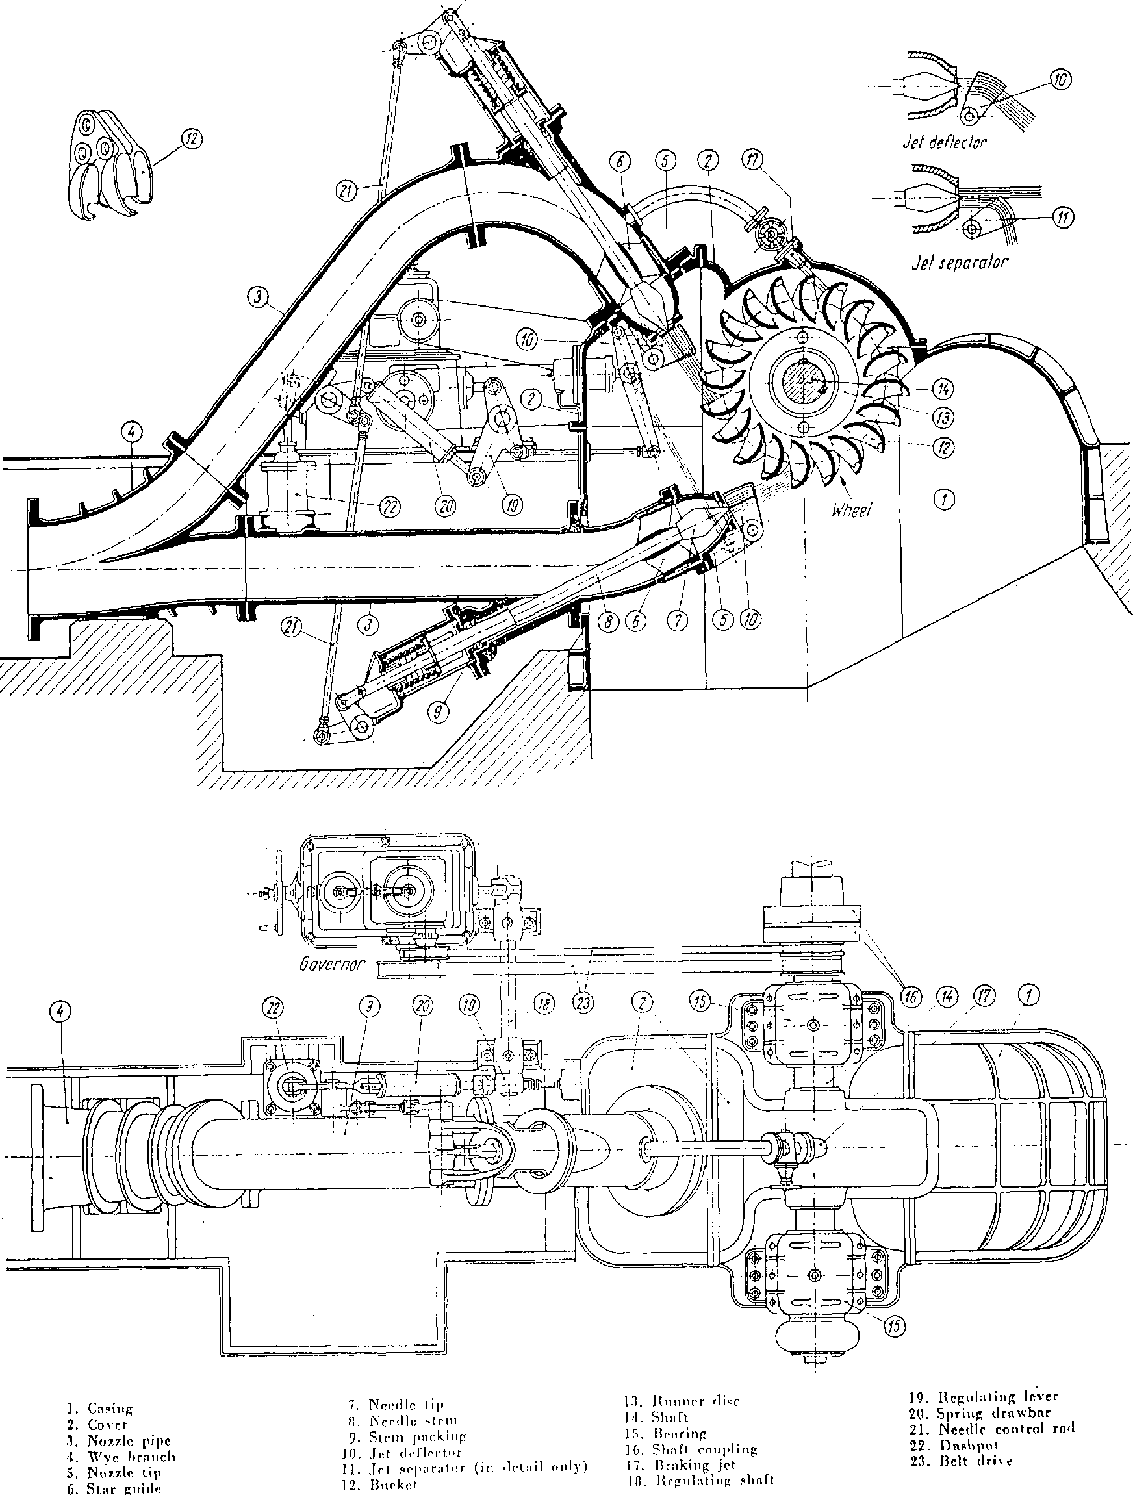 Turbine Drawing At Getdrawings